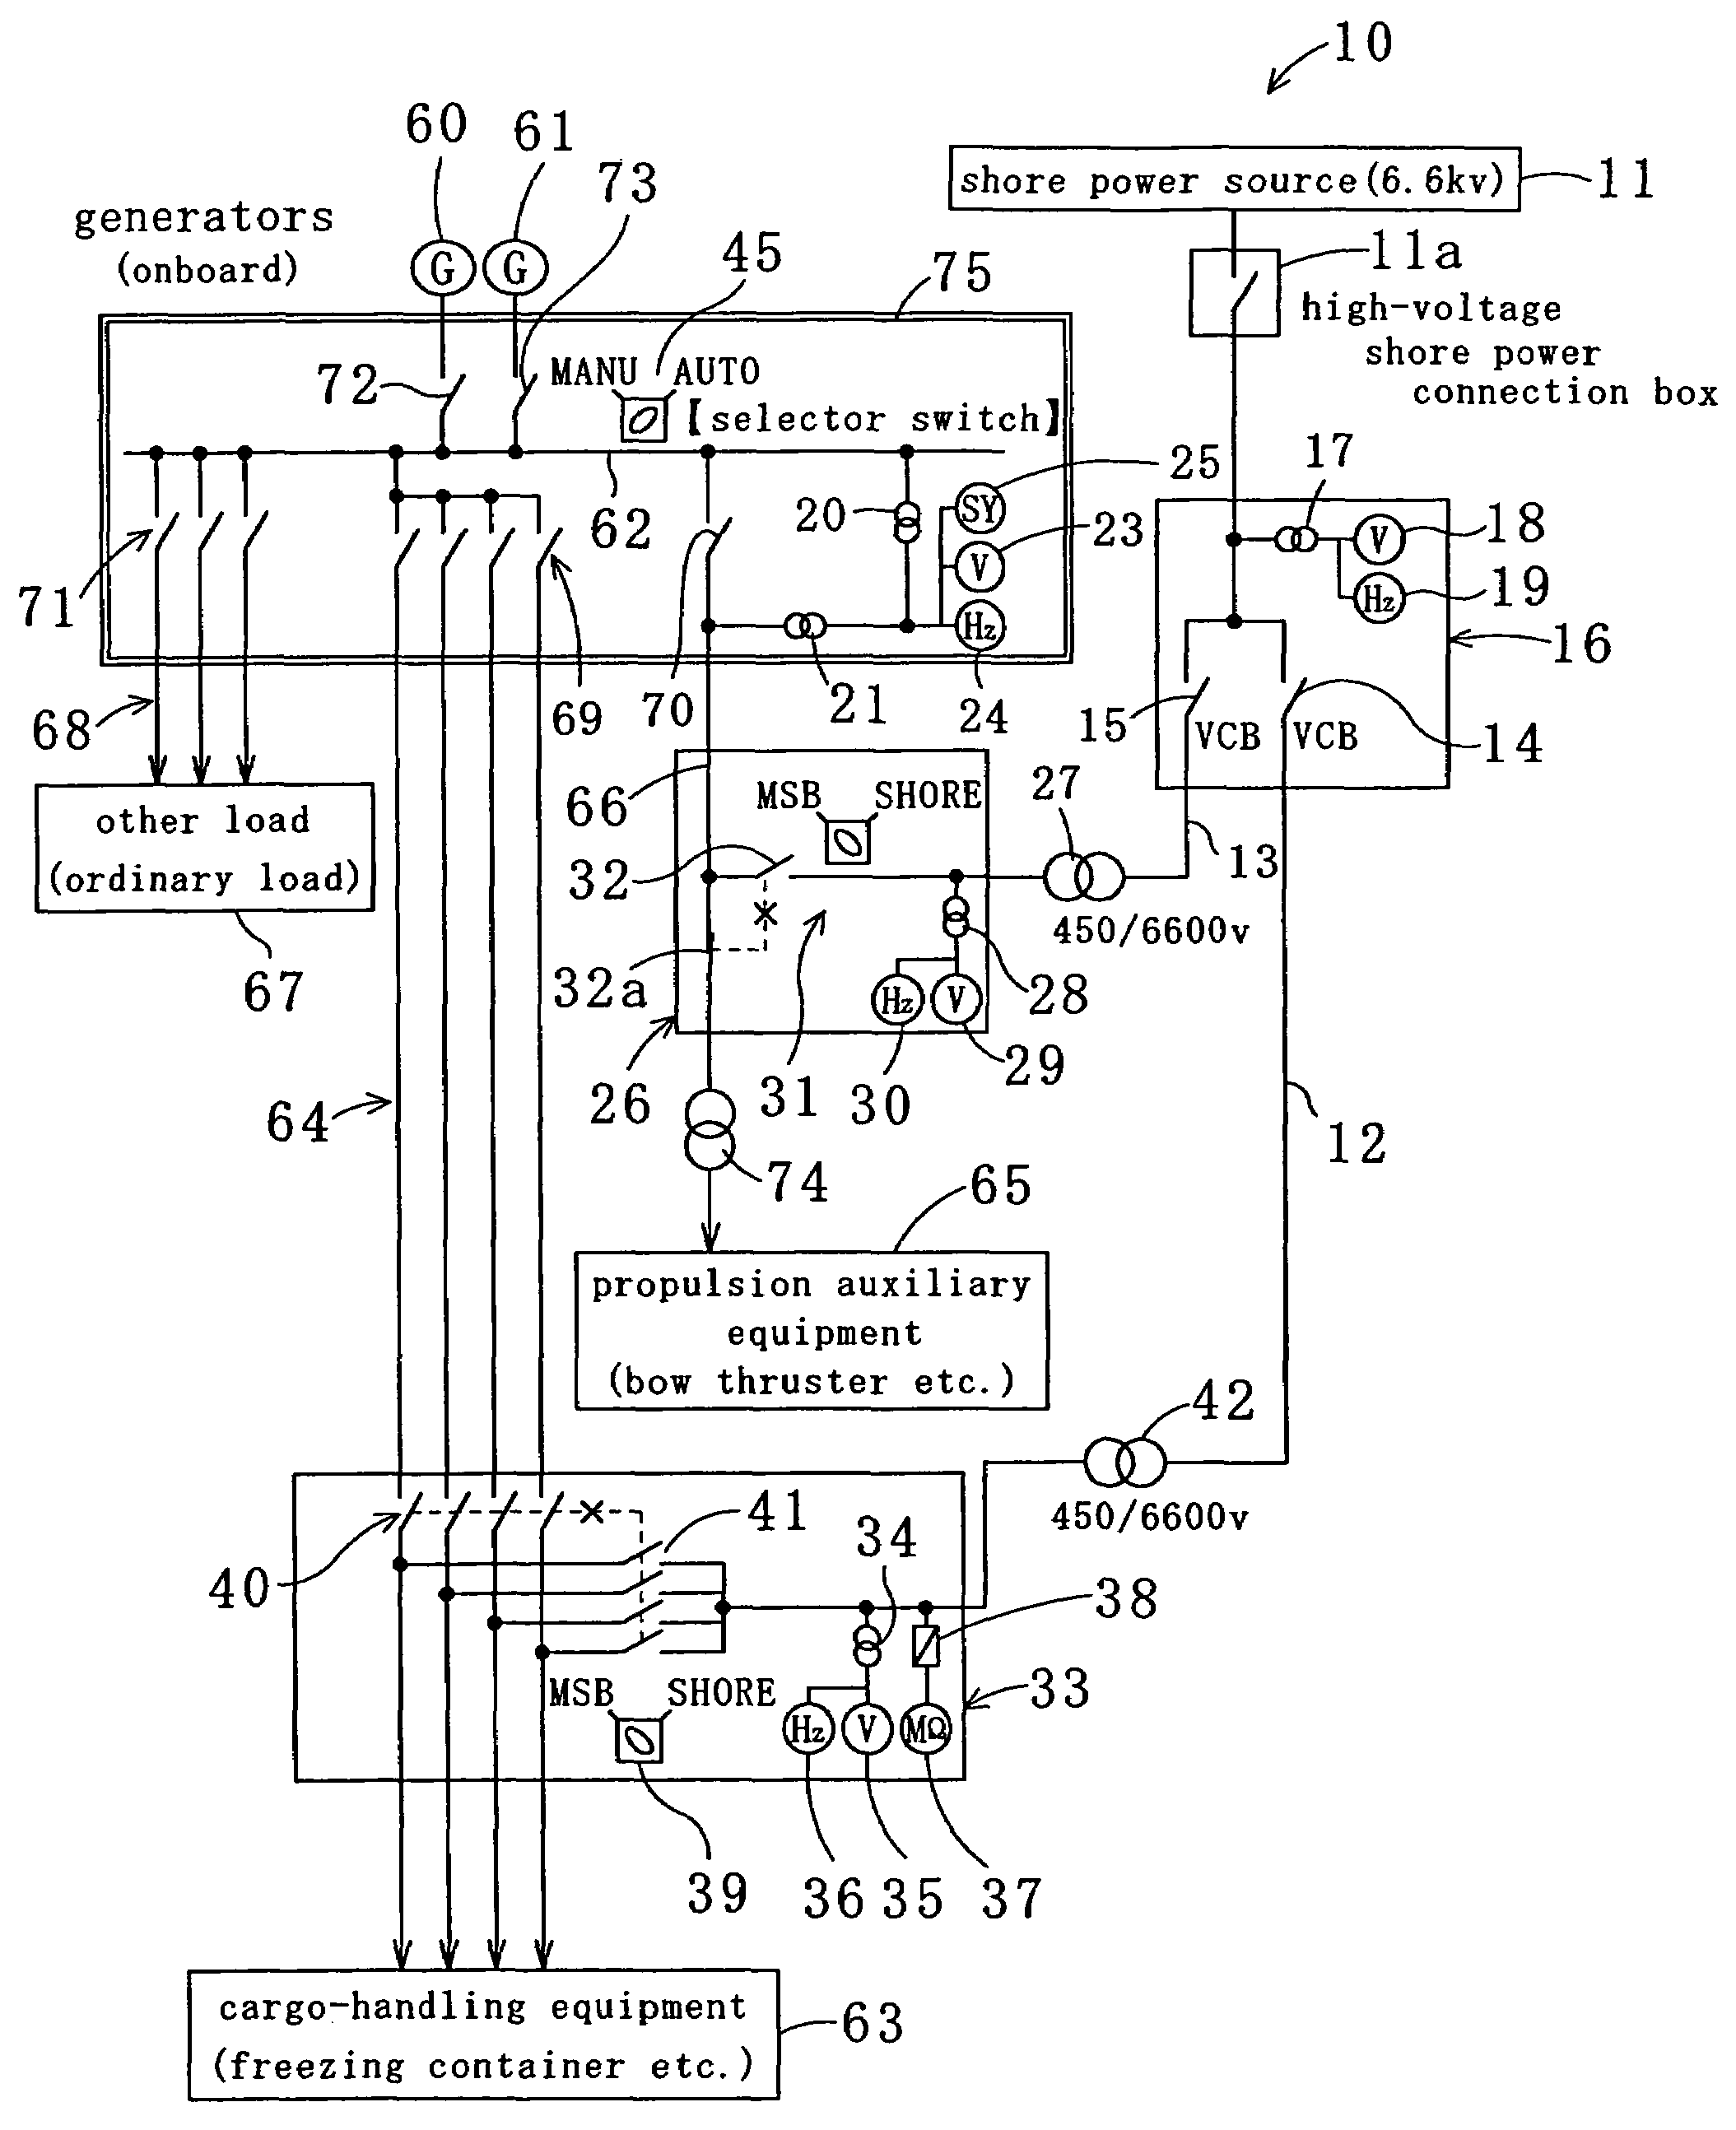 US07253538 20070807 D00000 patent us7253538 method of supplying electric power from shore vcb panel wiring diagram at reclaimingppi.co